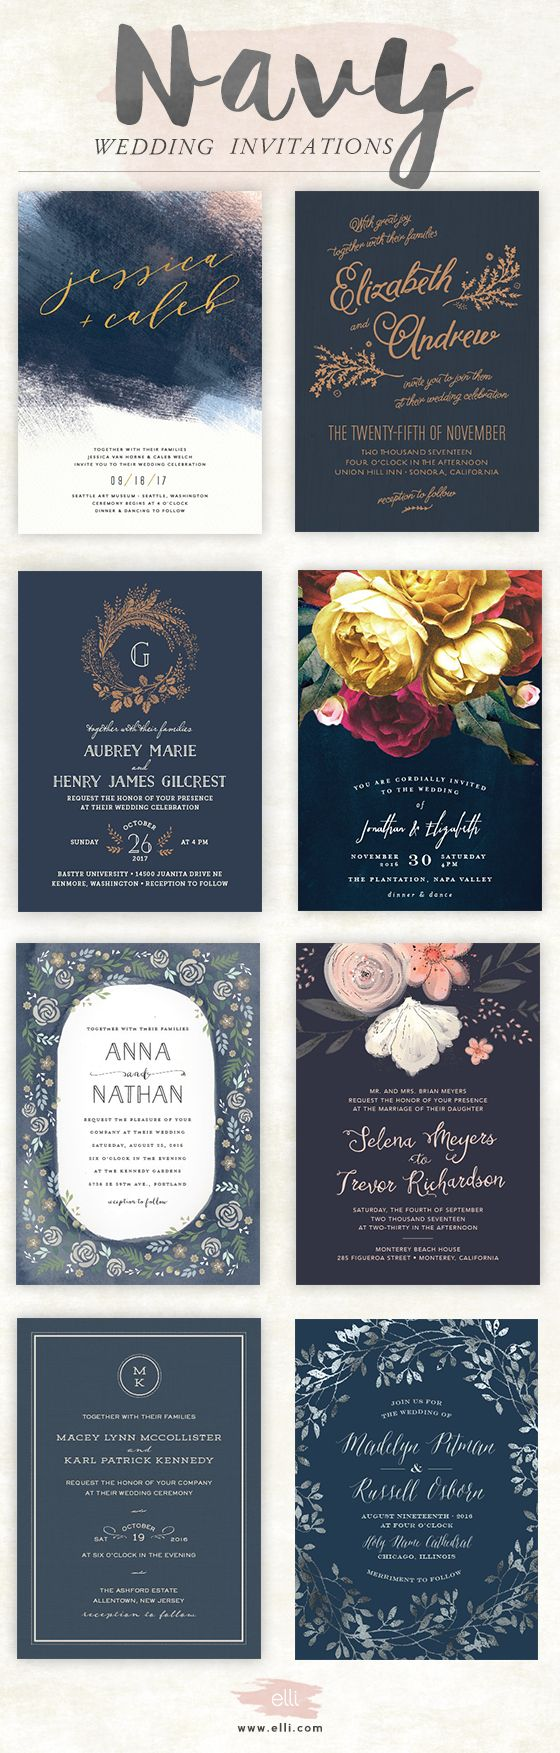 wedding invitations unique diy%0A Now trending  navy wedding invitations from Elli com